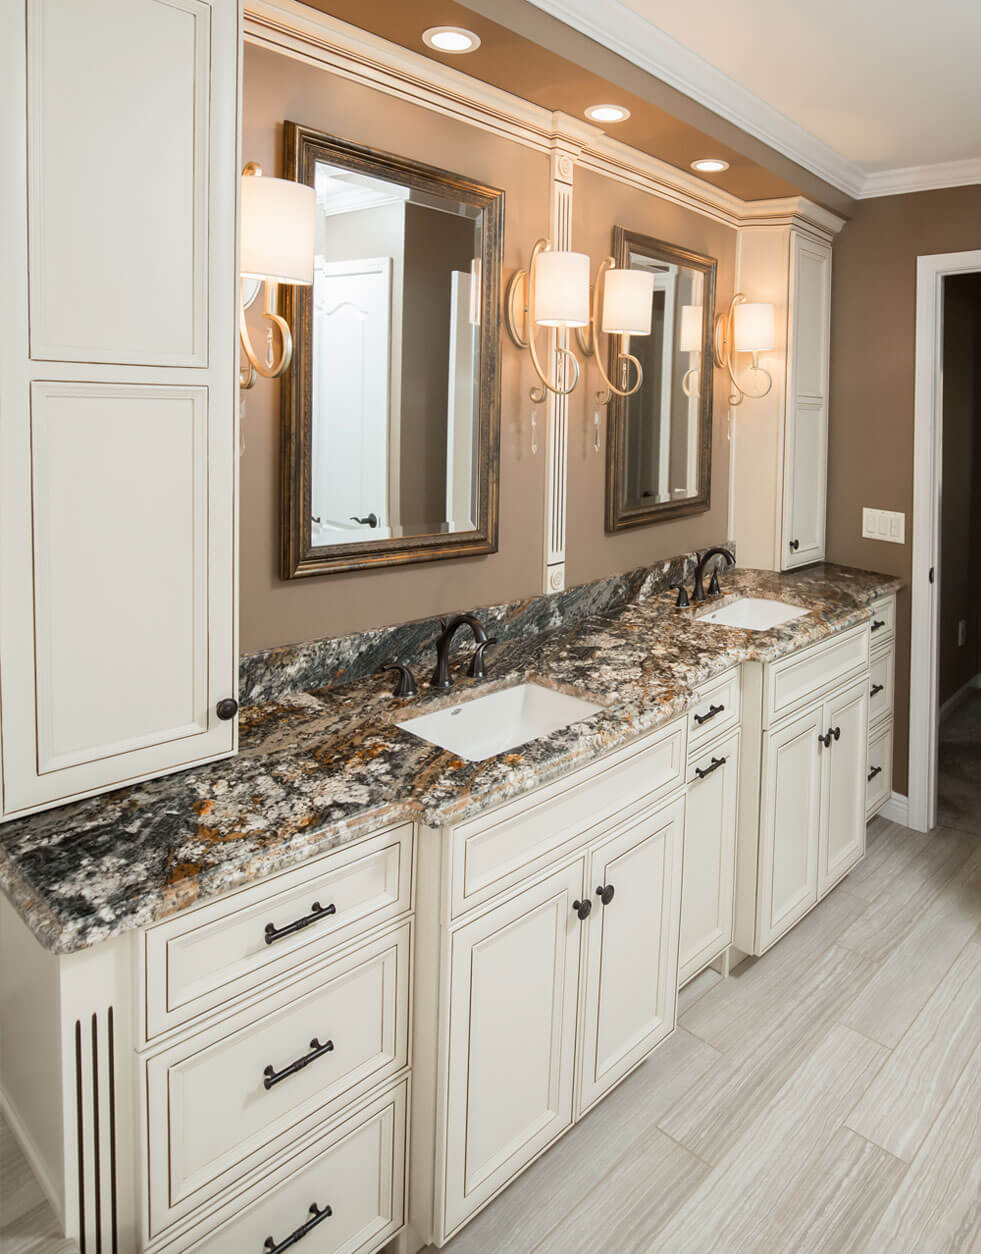 About MJ Cabinet Designs – Plymouth Kitchen and Bath Remodeler